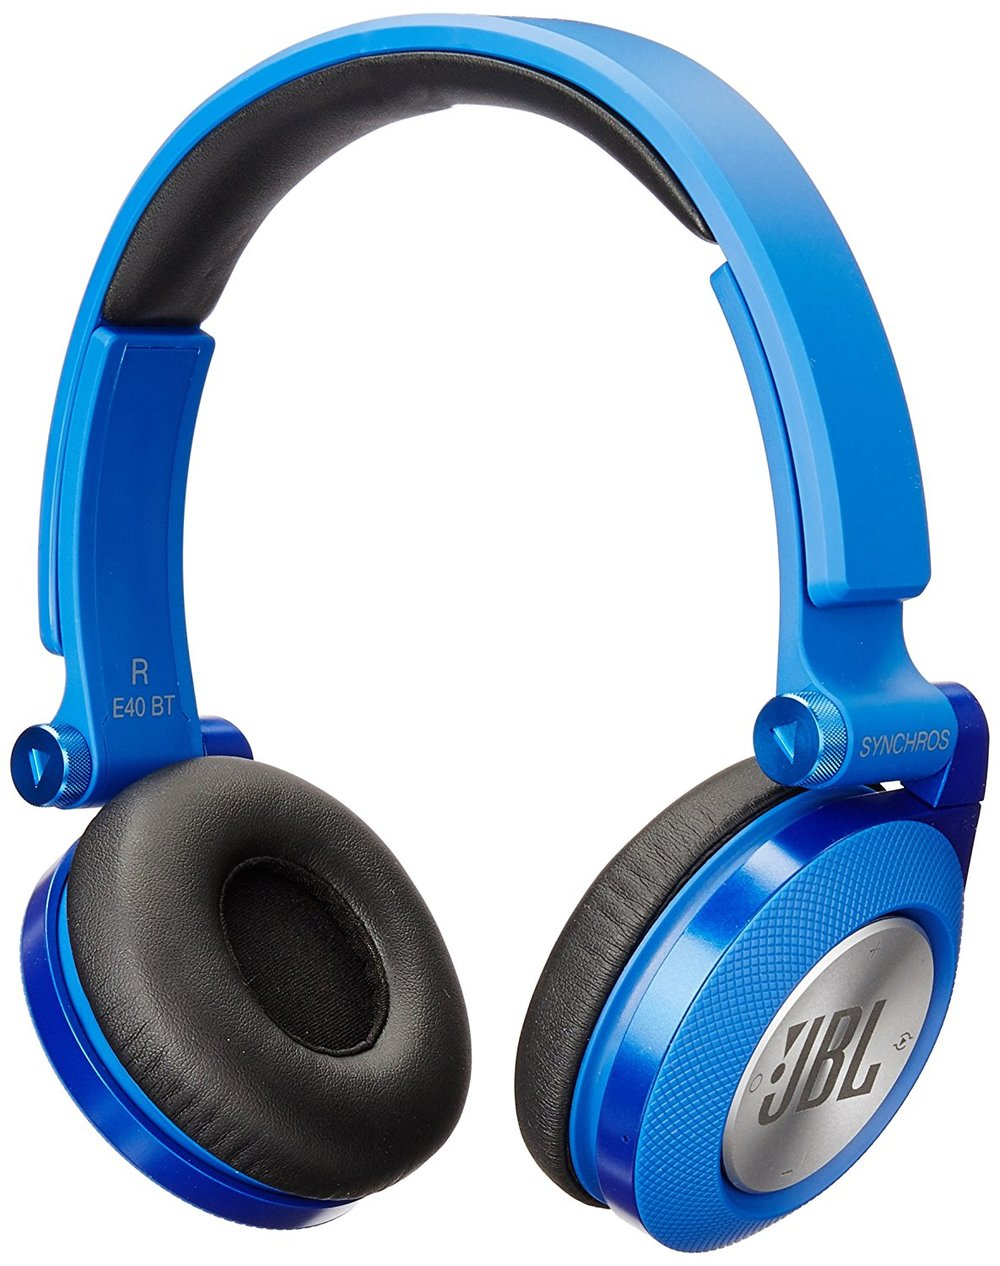 JBL E40BT Blue High-Performance Wireless On-Ear Bluetooth Stereo Headphone.jpg